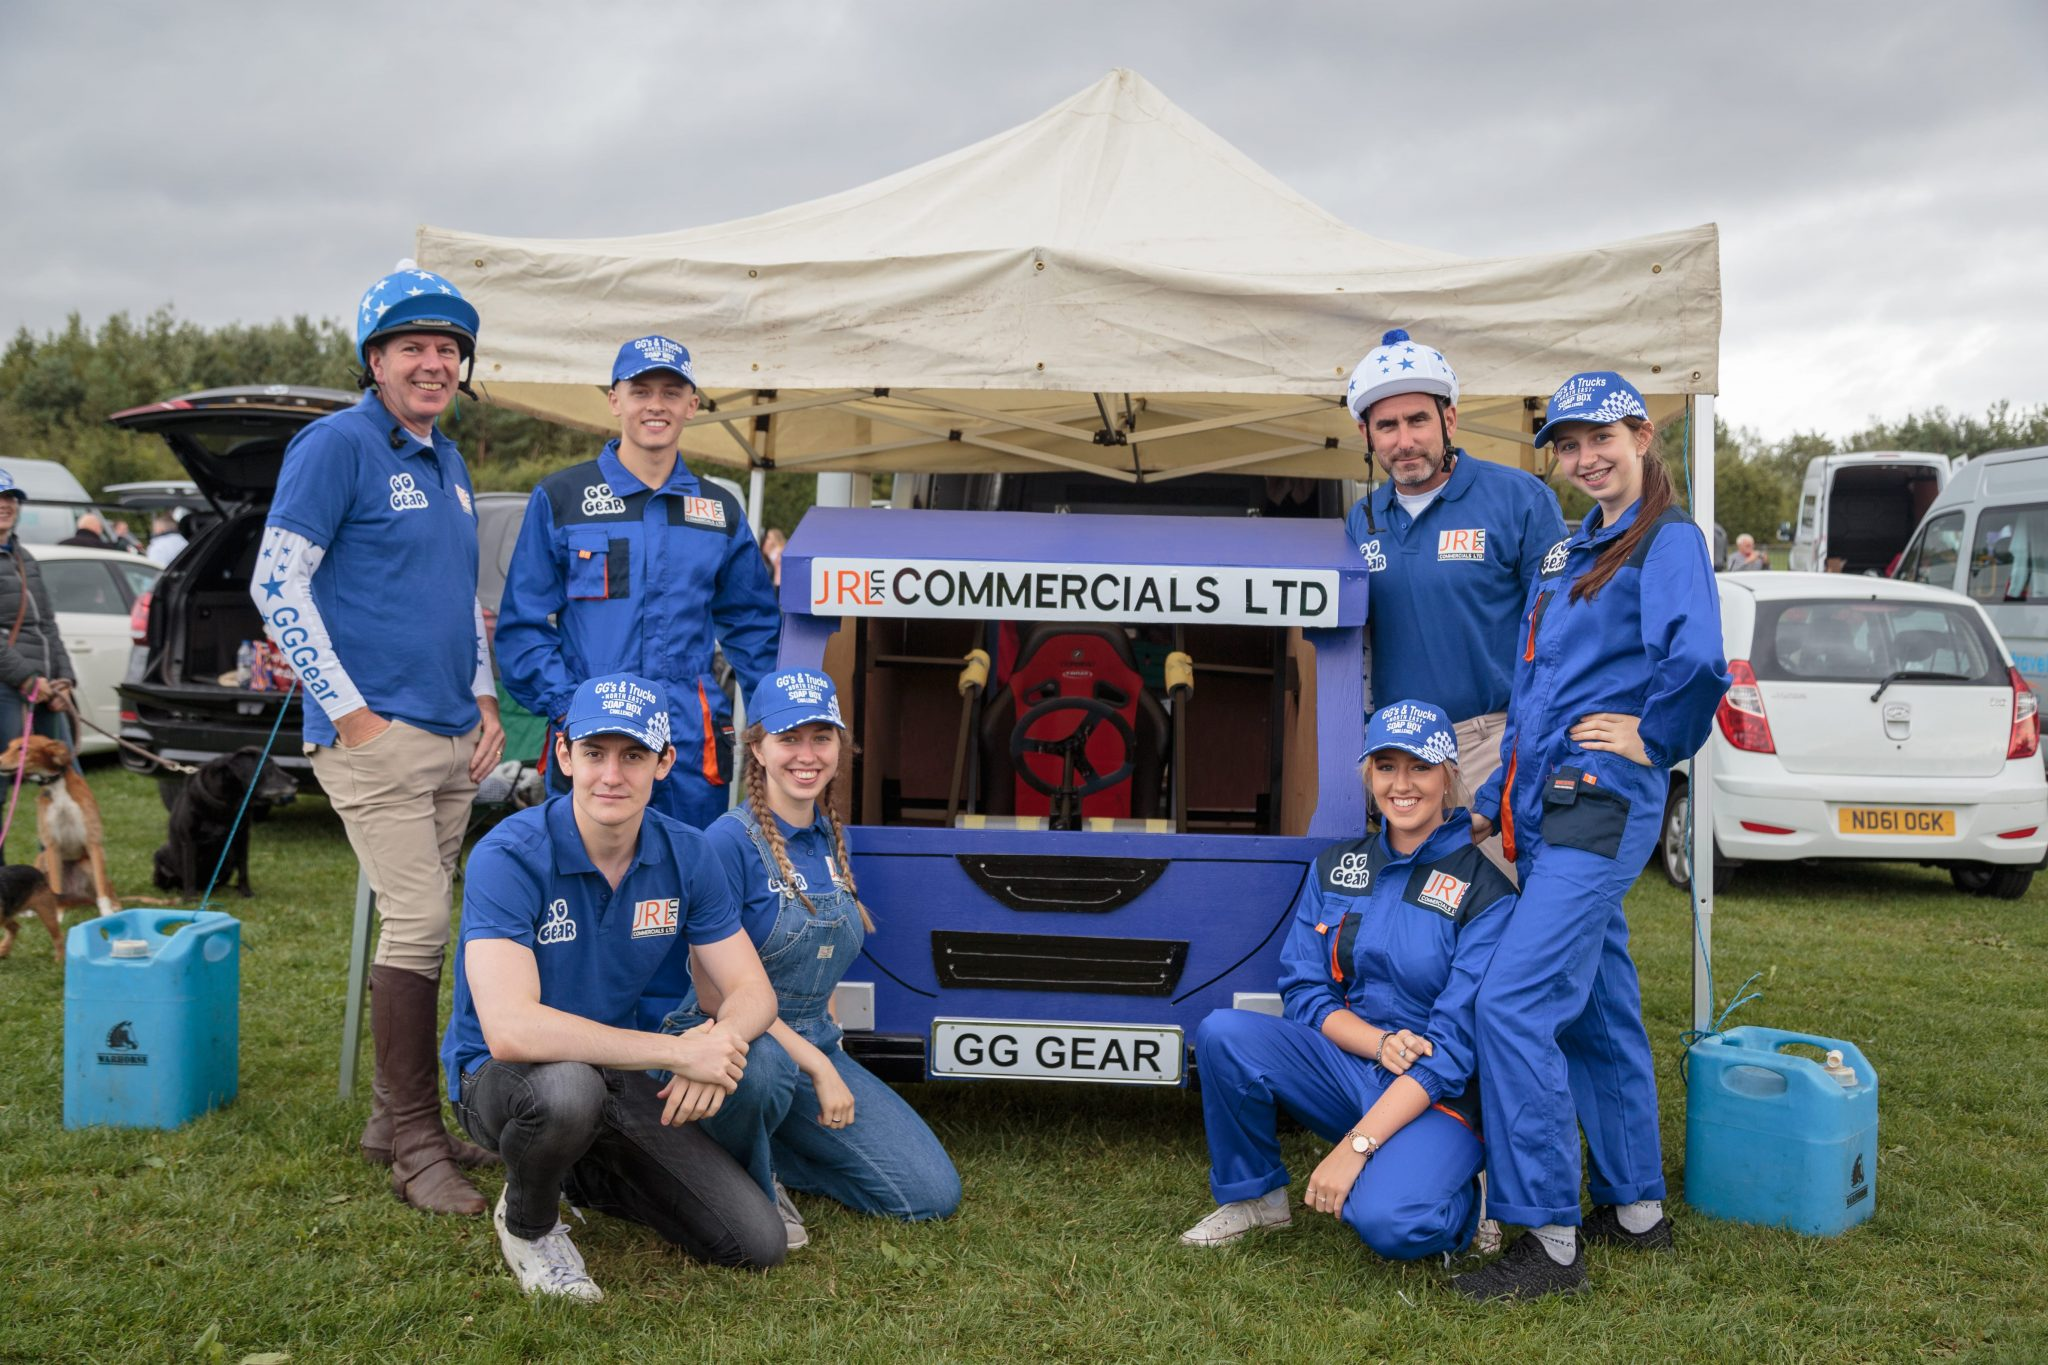 The second annual UK Soapbox Challenge set to take place at Sunderland's Herrington Country Park